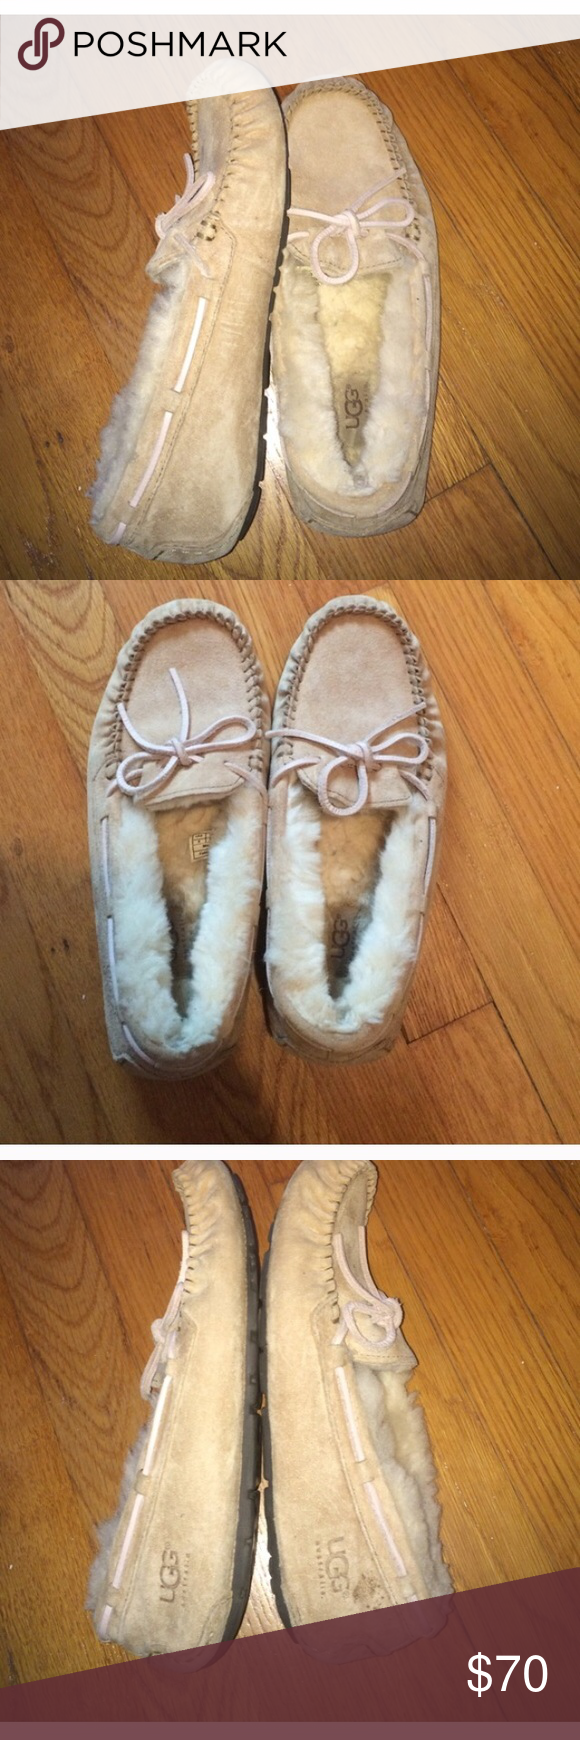 Pink and tan UGG moccasins UGG light pink and beige moccasin slippers, hardly worn Ugg Shoes